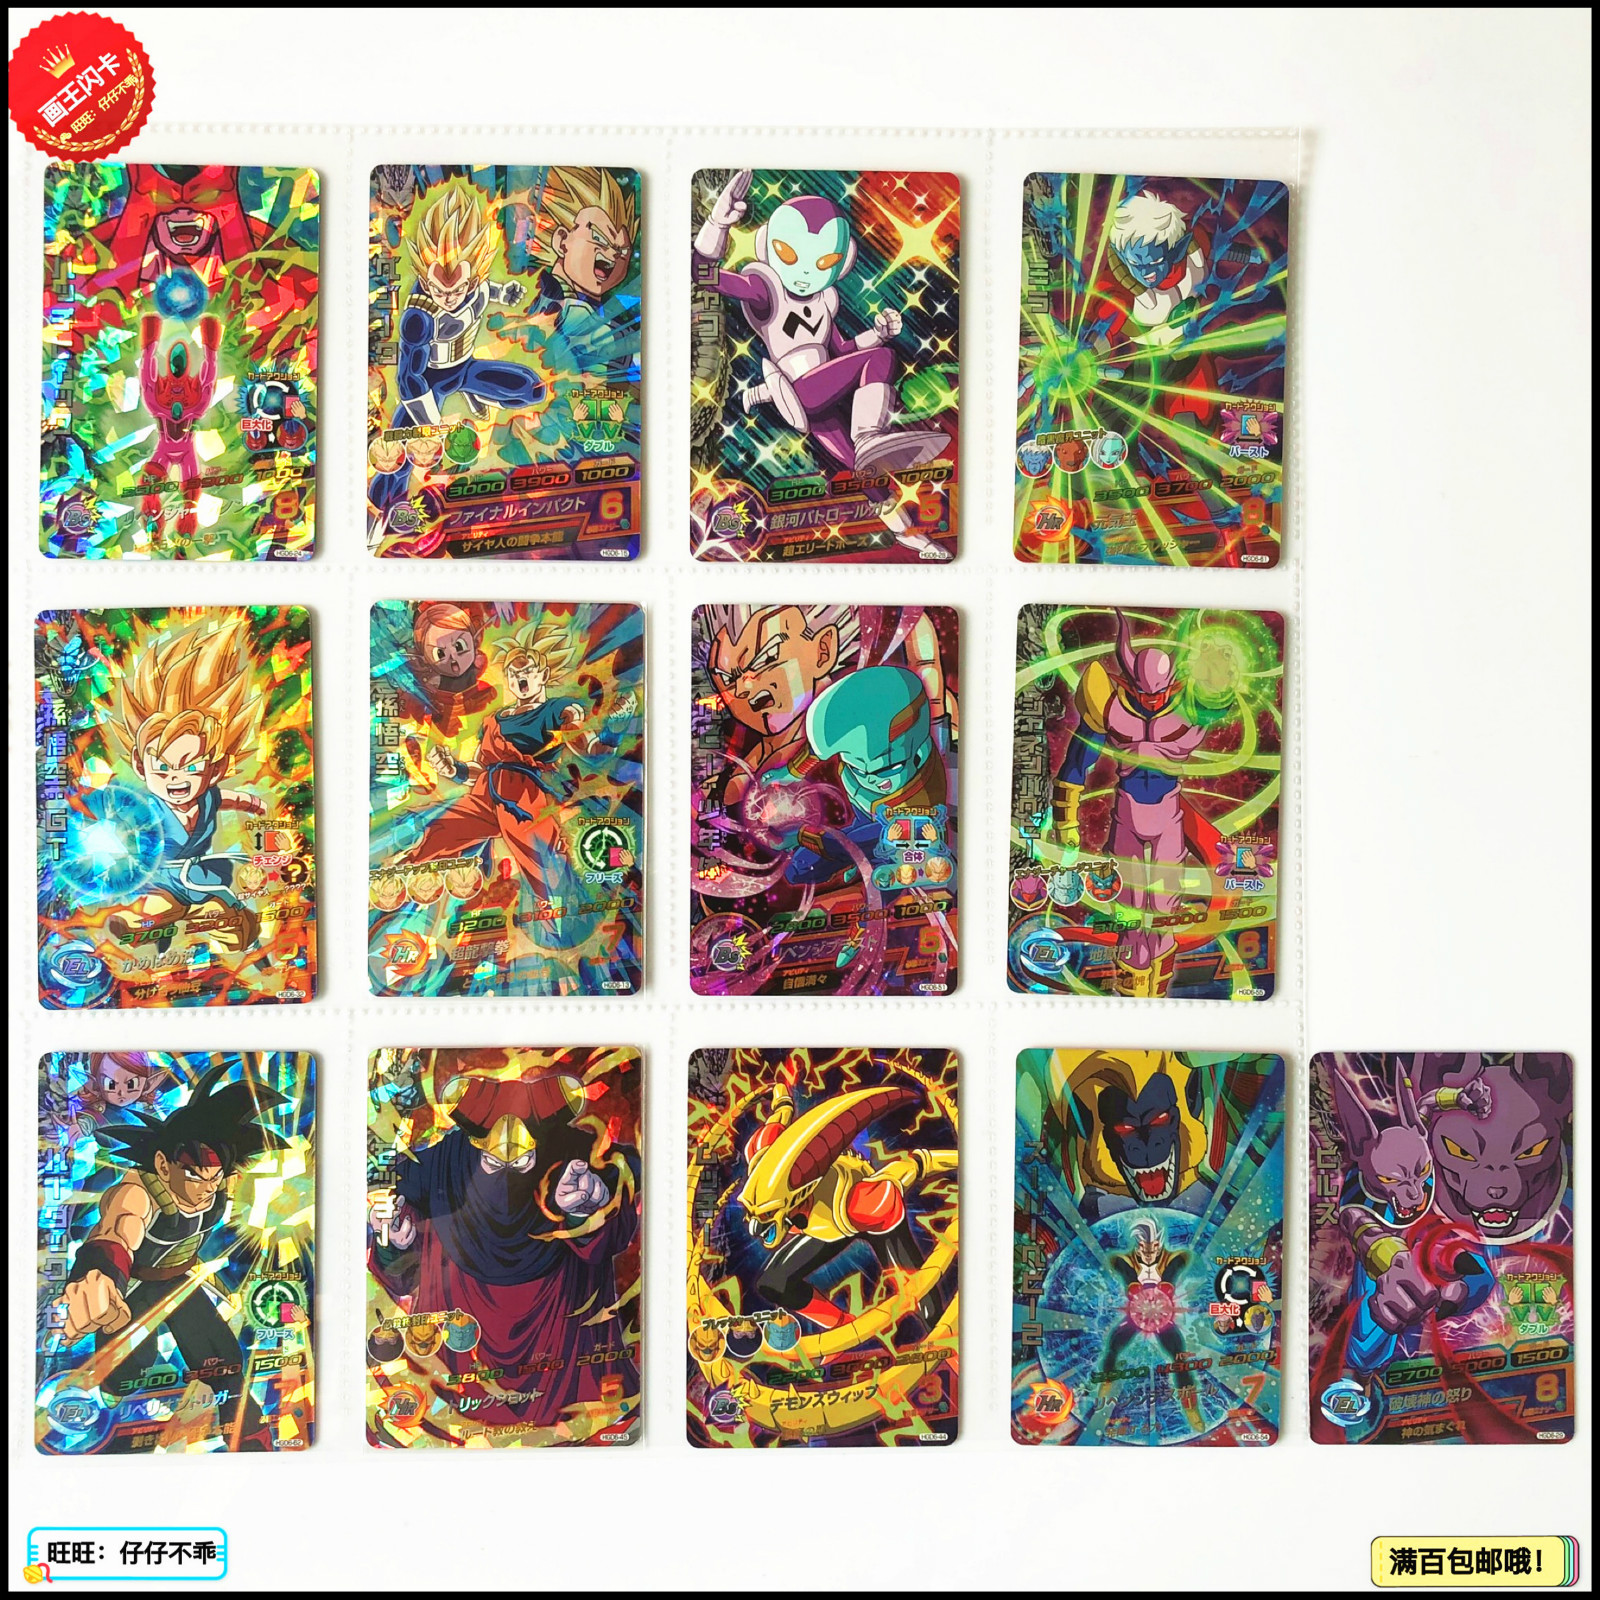 Japan Original Dragon Ball Card Hero SR Flash HGD6 3 Stars Super Goku Toys Hobbies Collectibles Game Collection Anime Cards